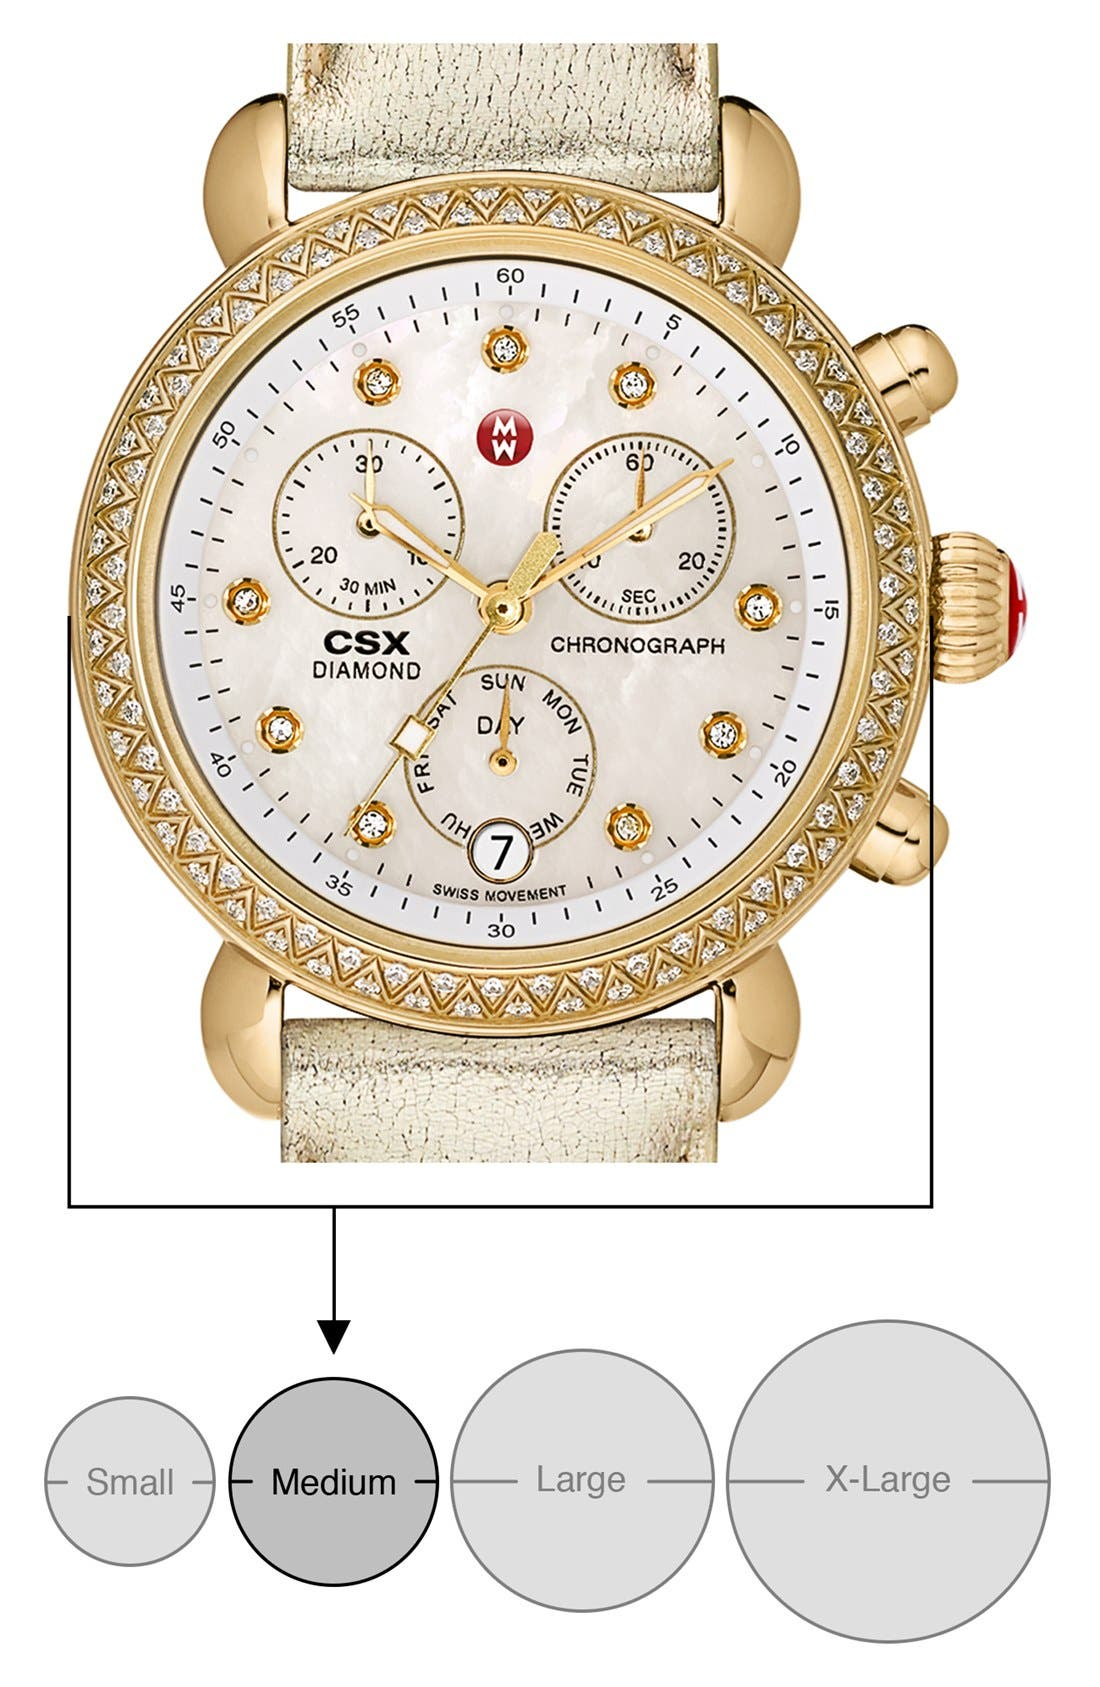 MICHELE,                             'CSX-36 Diamond' Diamond Dial Gold Plated Watch Case, 36mm,                             Alternate thumbnail 5, color,                             710